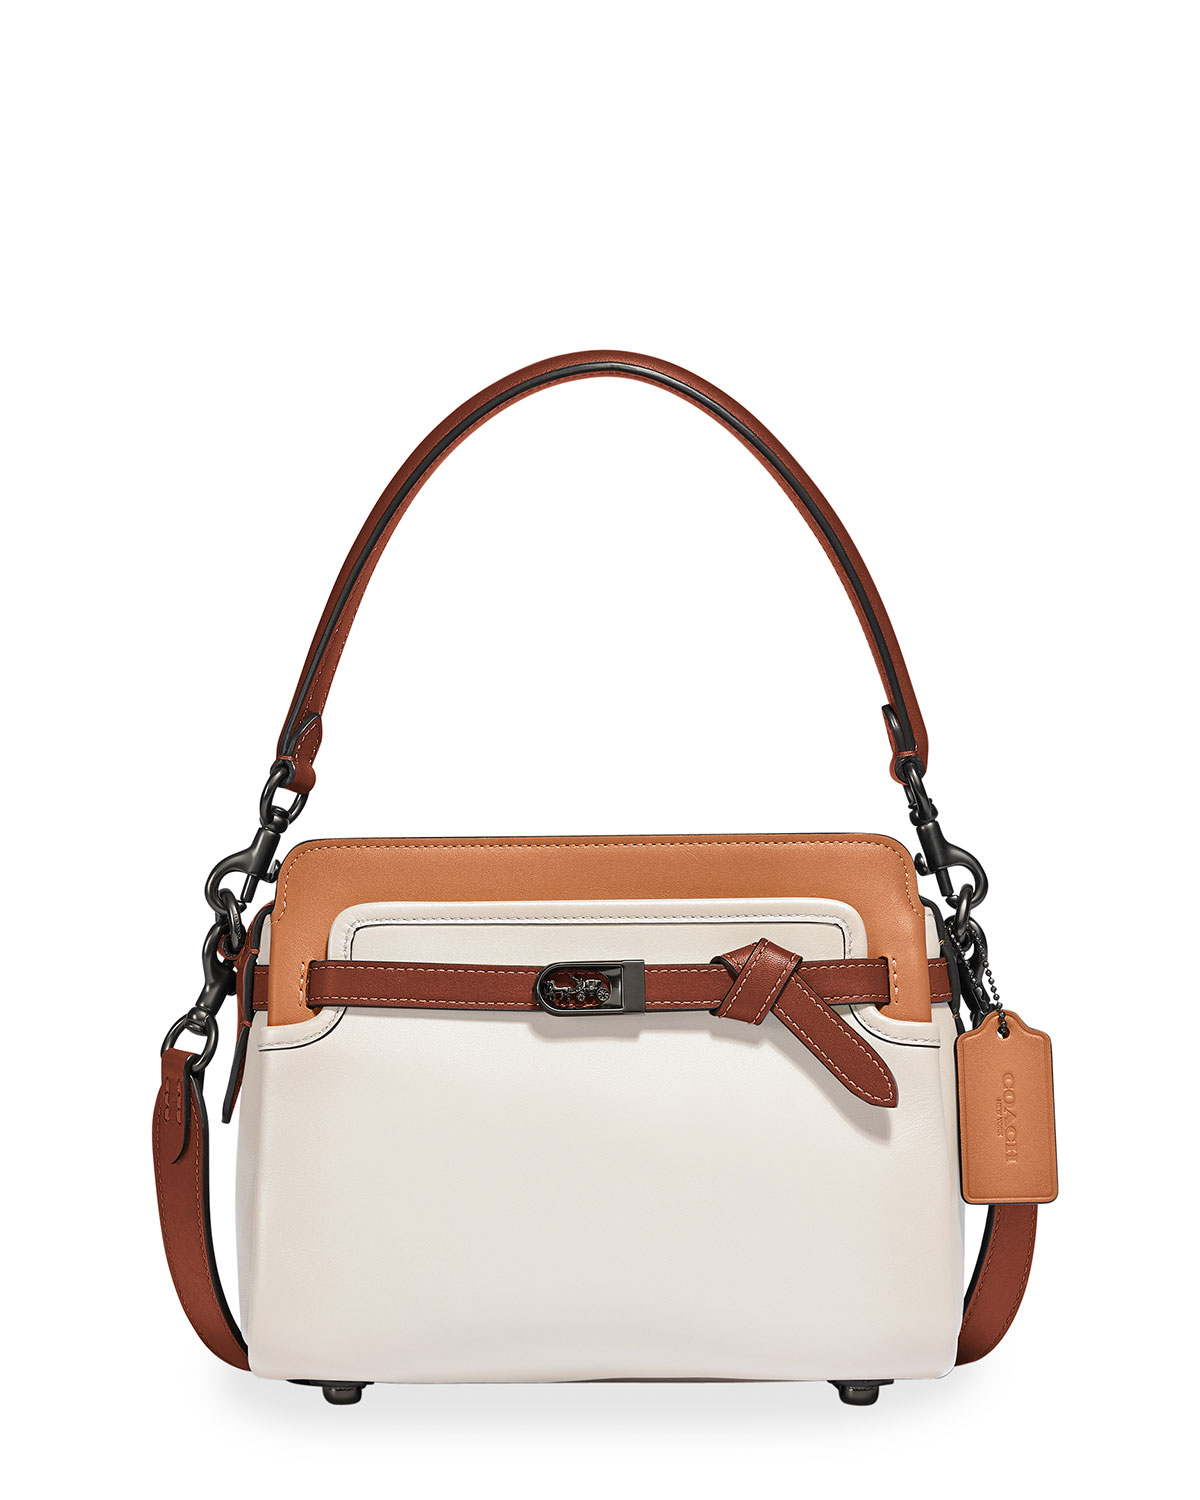 Coach Leathers TATE COLORBLOCK CARRYALL SATCHEL BAG